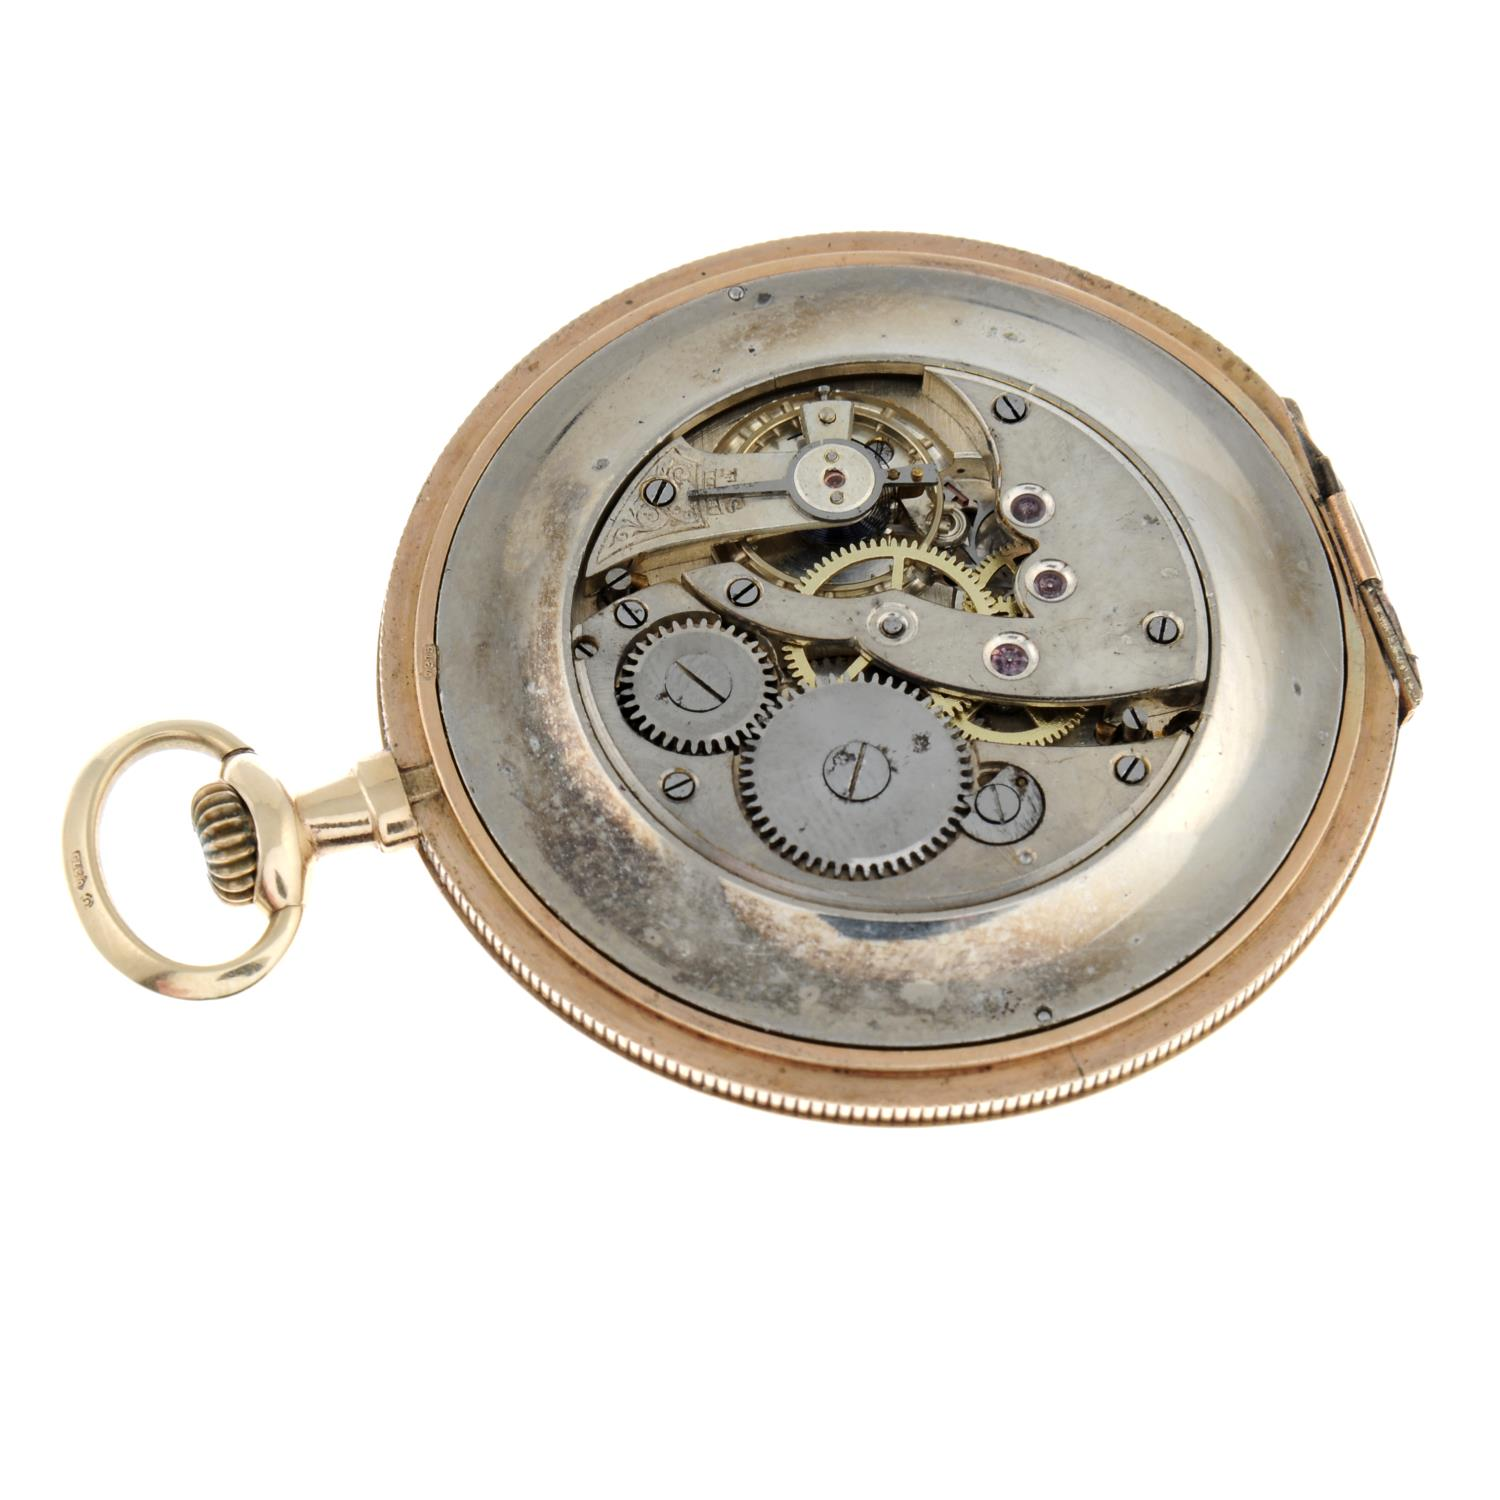 An open face pocket watch. - Image 3 of 4